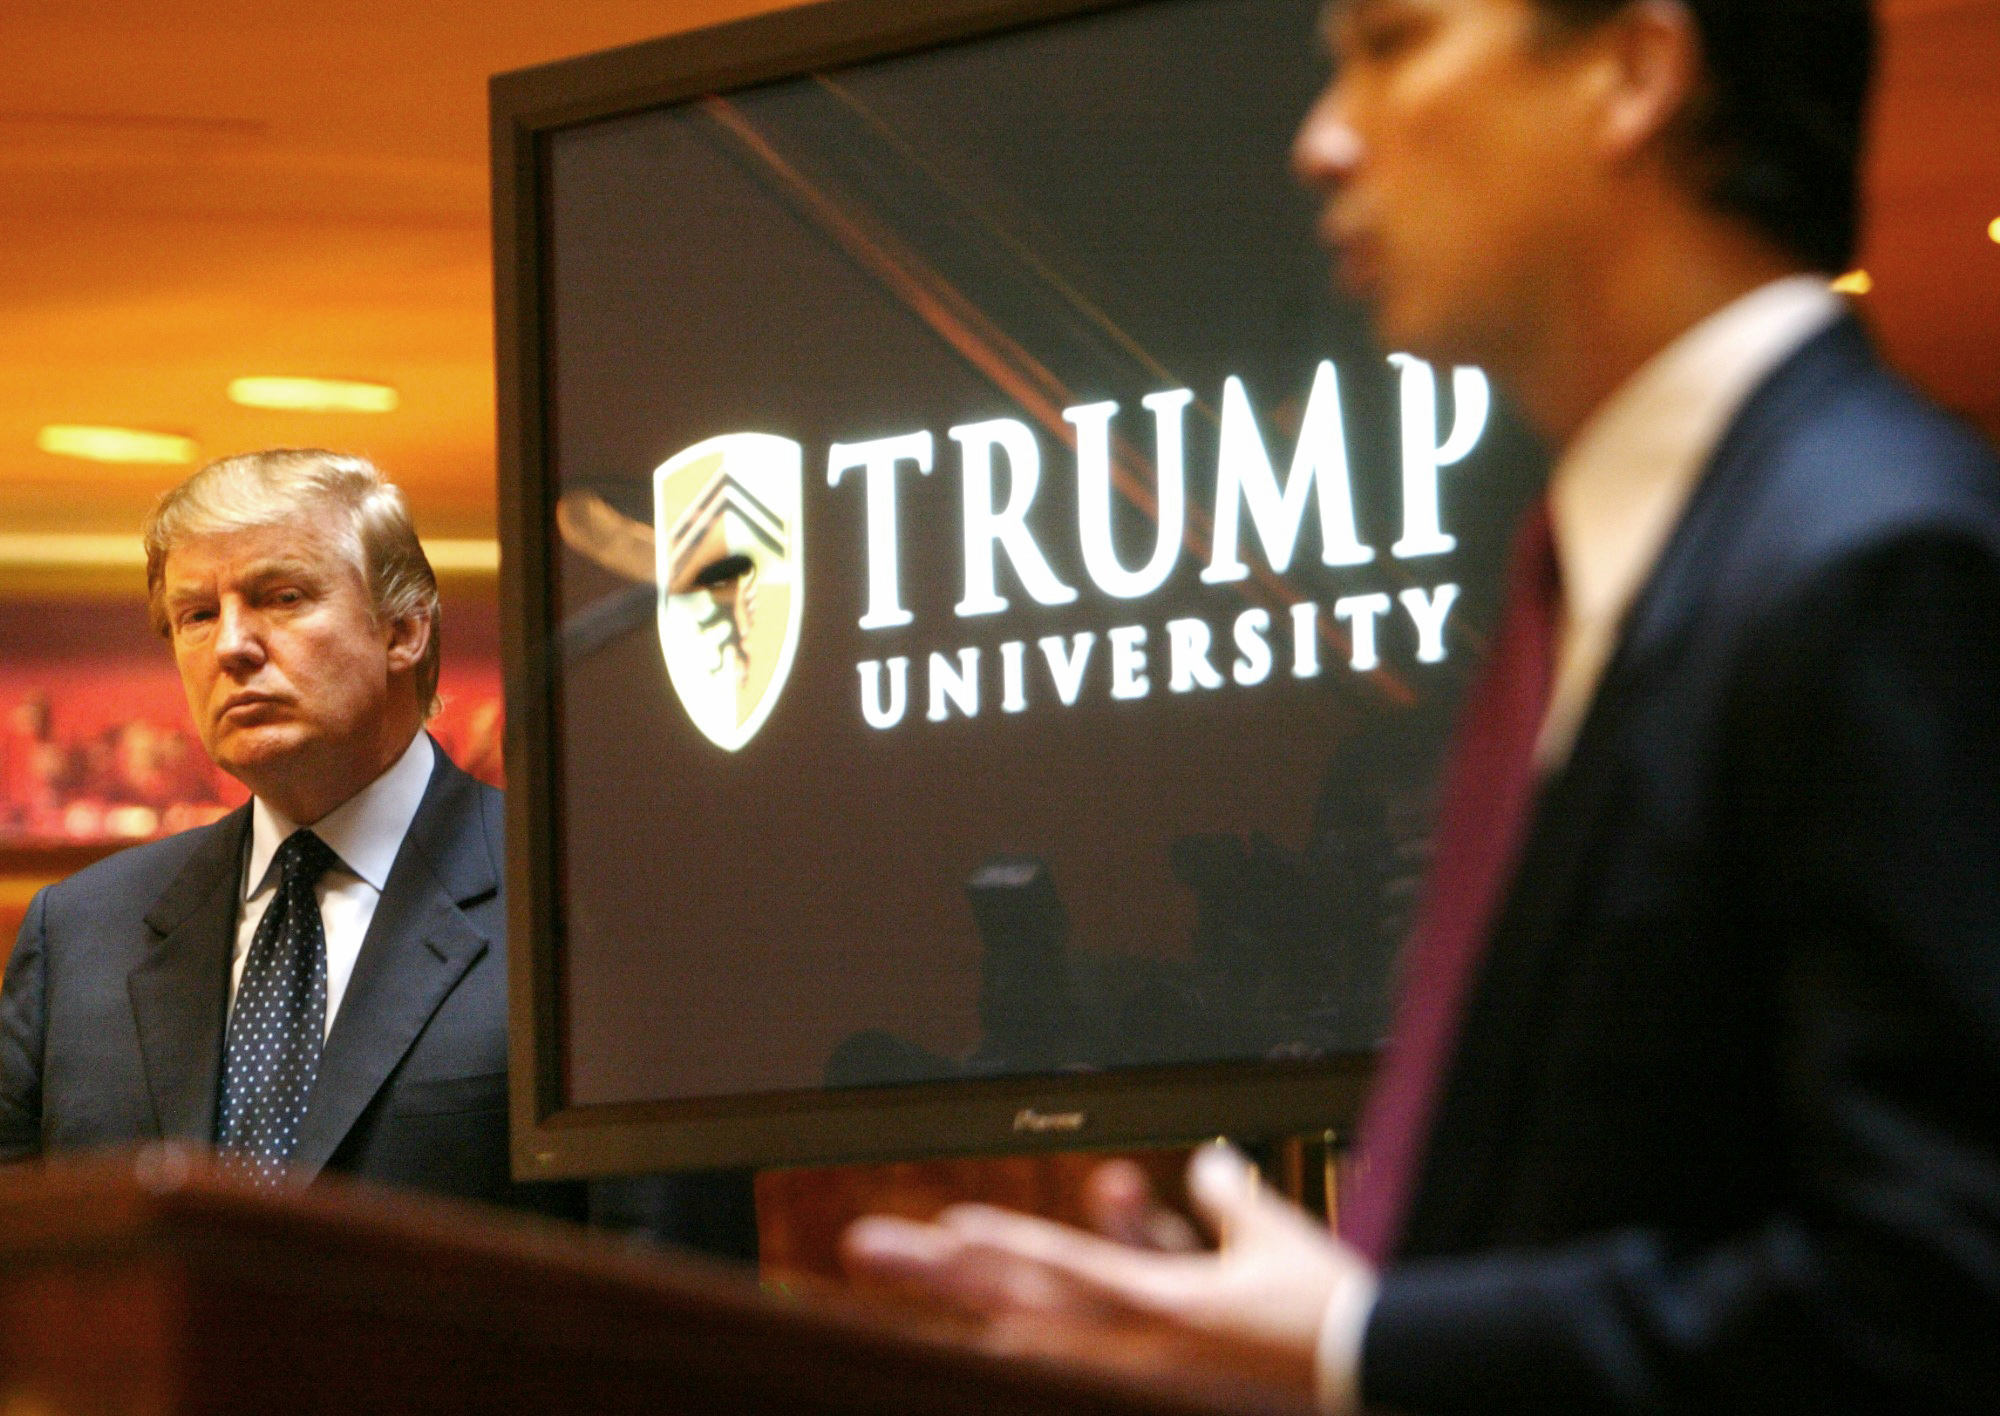 Donald Trump listens as Michael Sexton introduces him at a news conference in New York where he announced the establishment of Trump University on May 23, 2005.